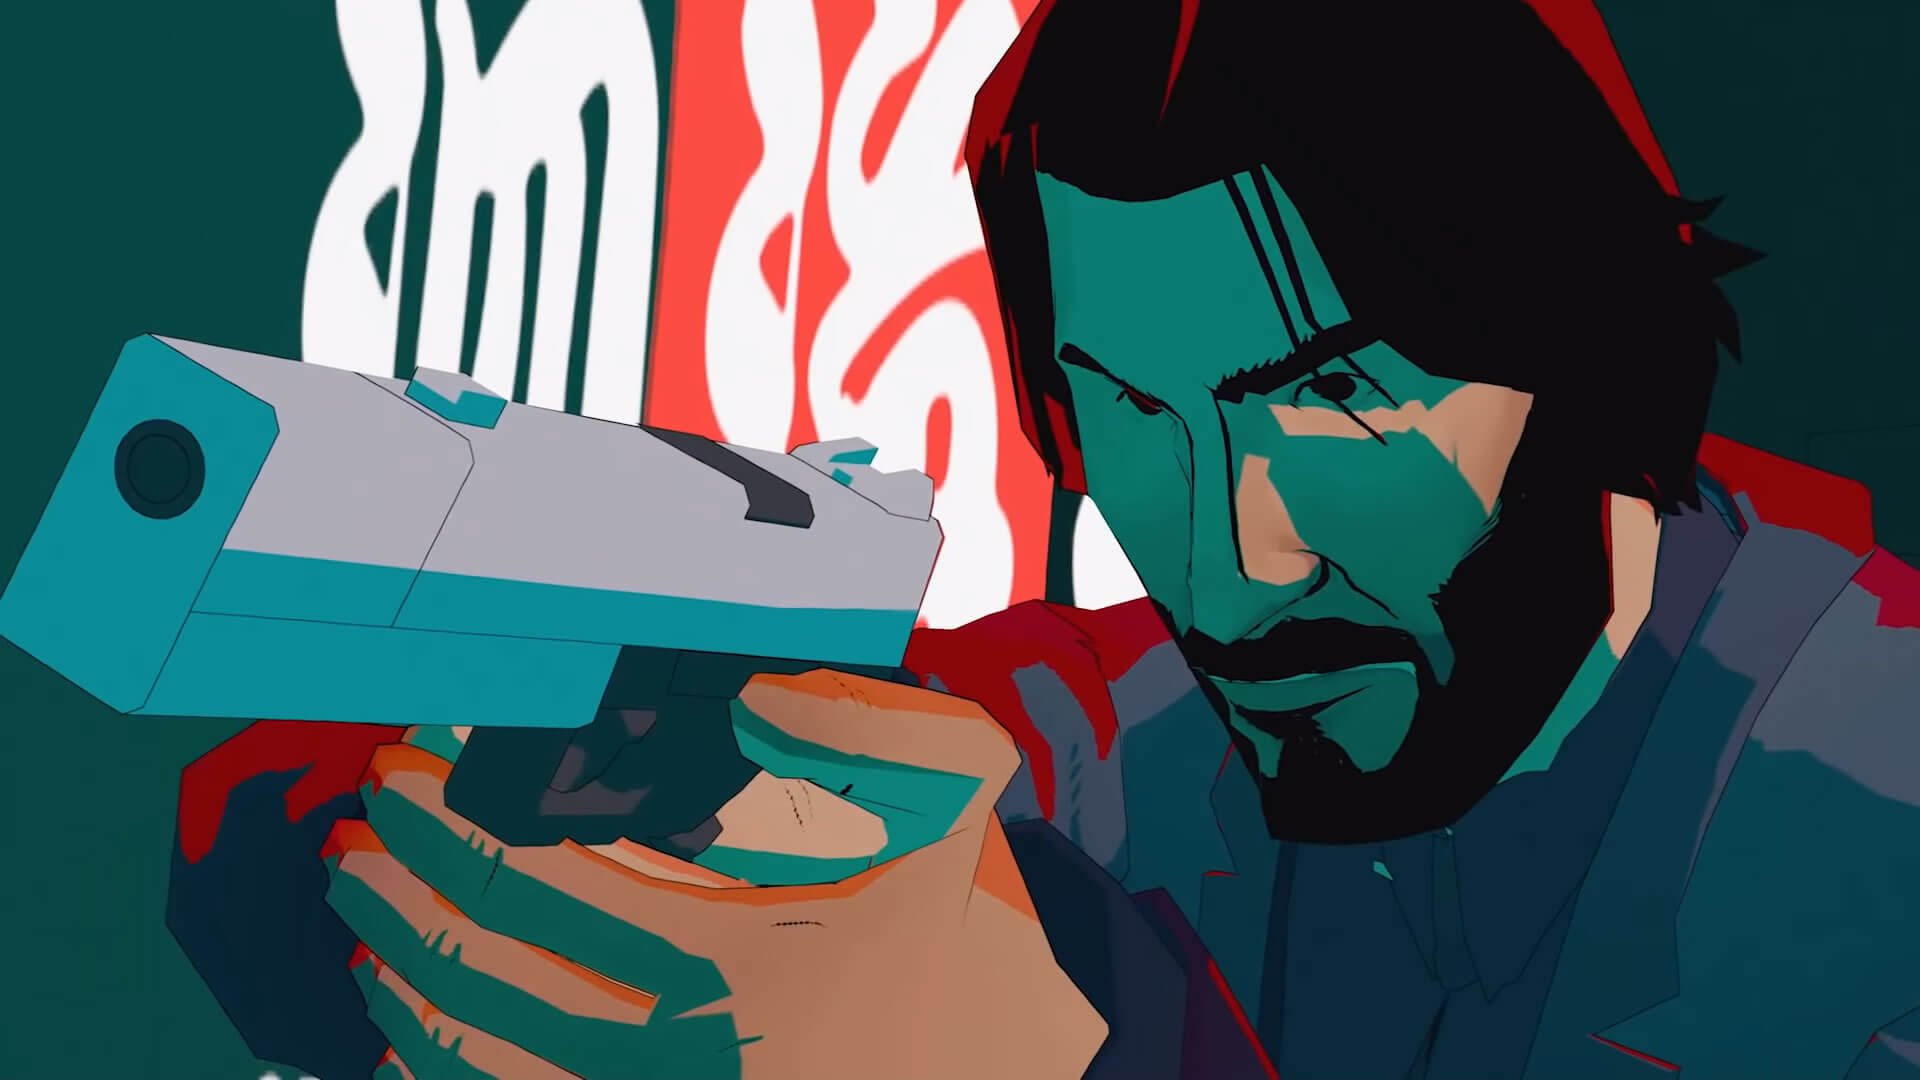 John Wick Hex game announced